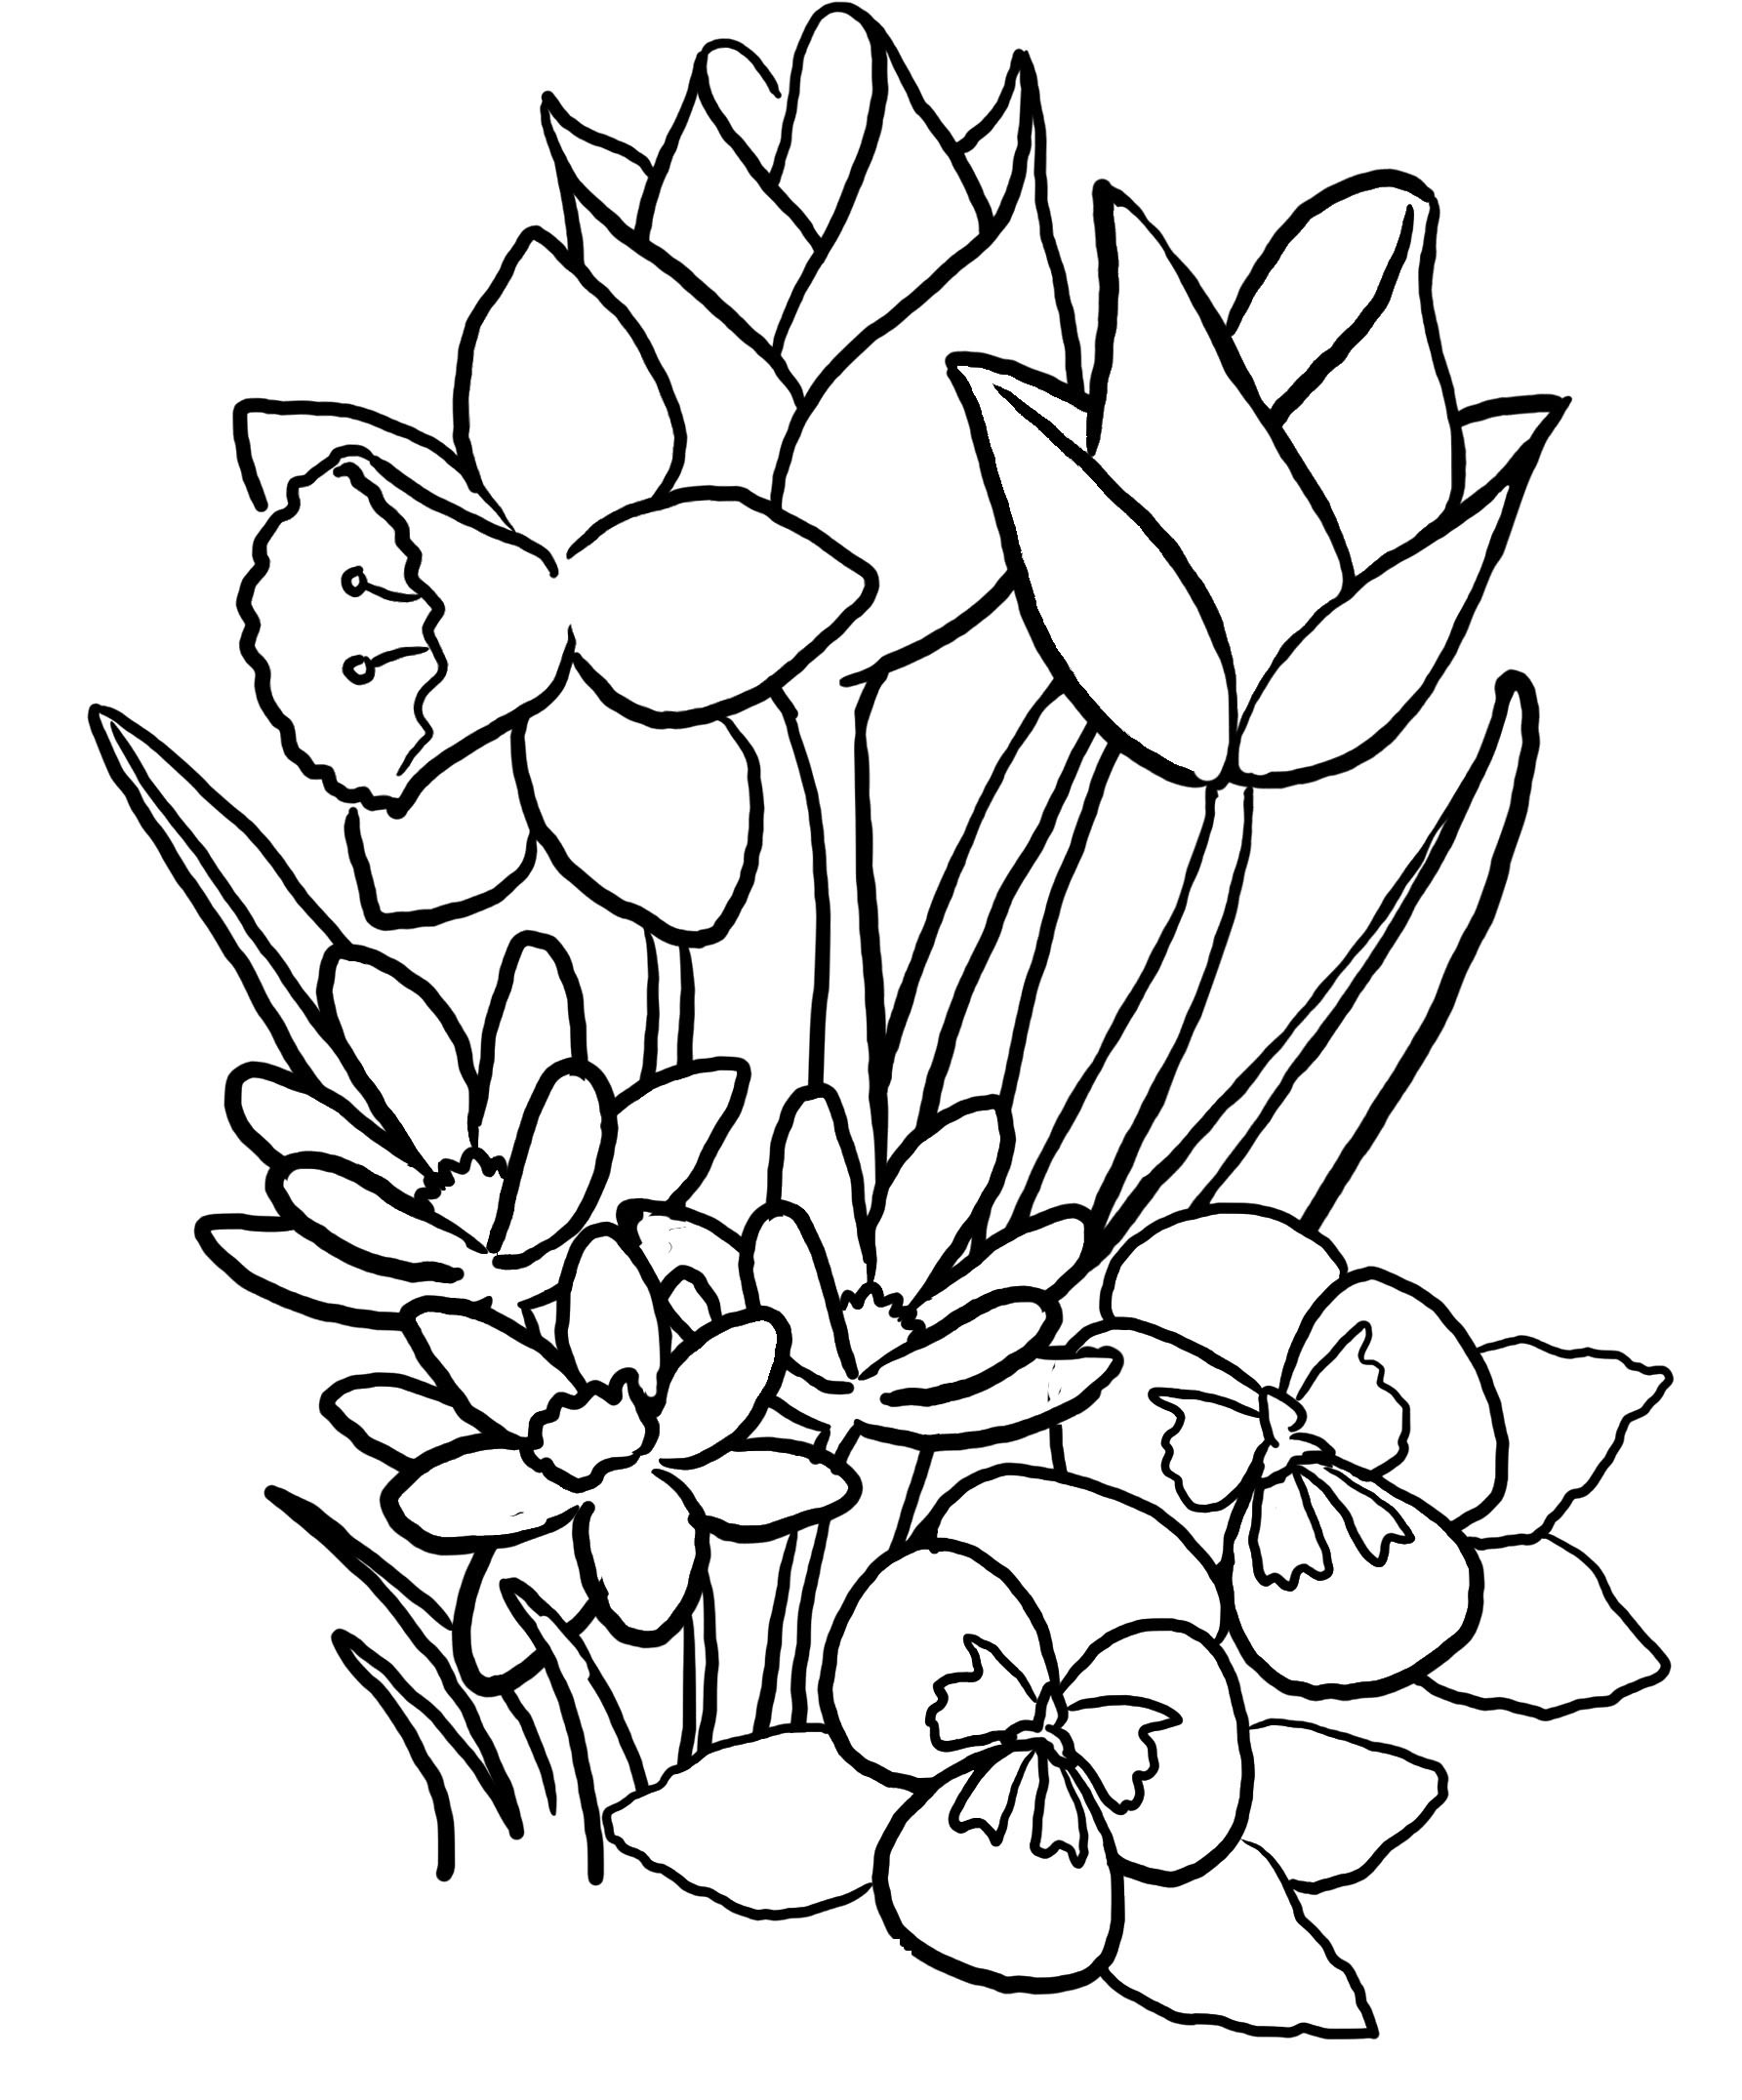 1785x2152 Rose Bud Flower Coloring Pages For Kids Best Of Roses Coloring